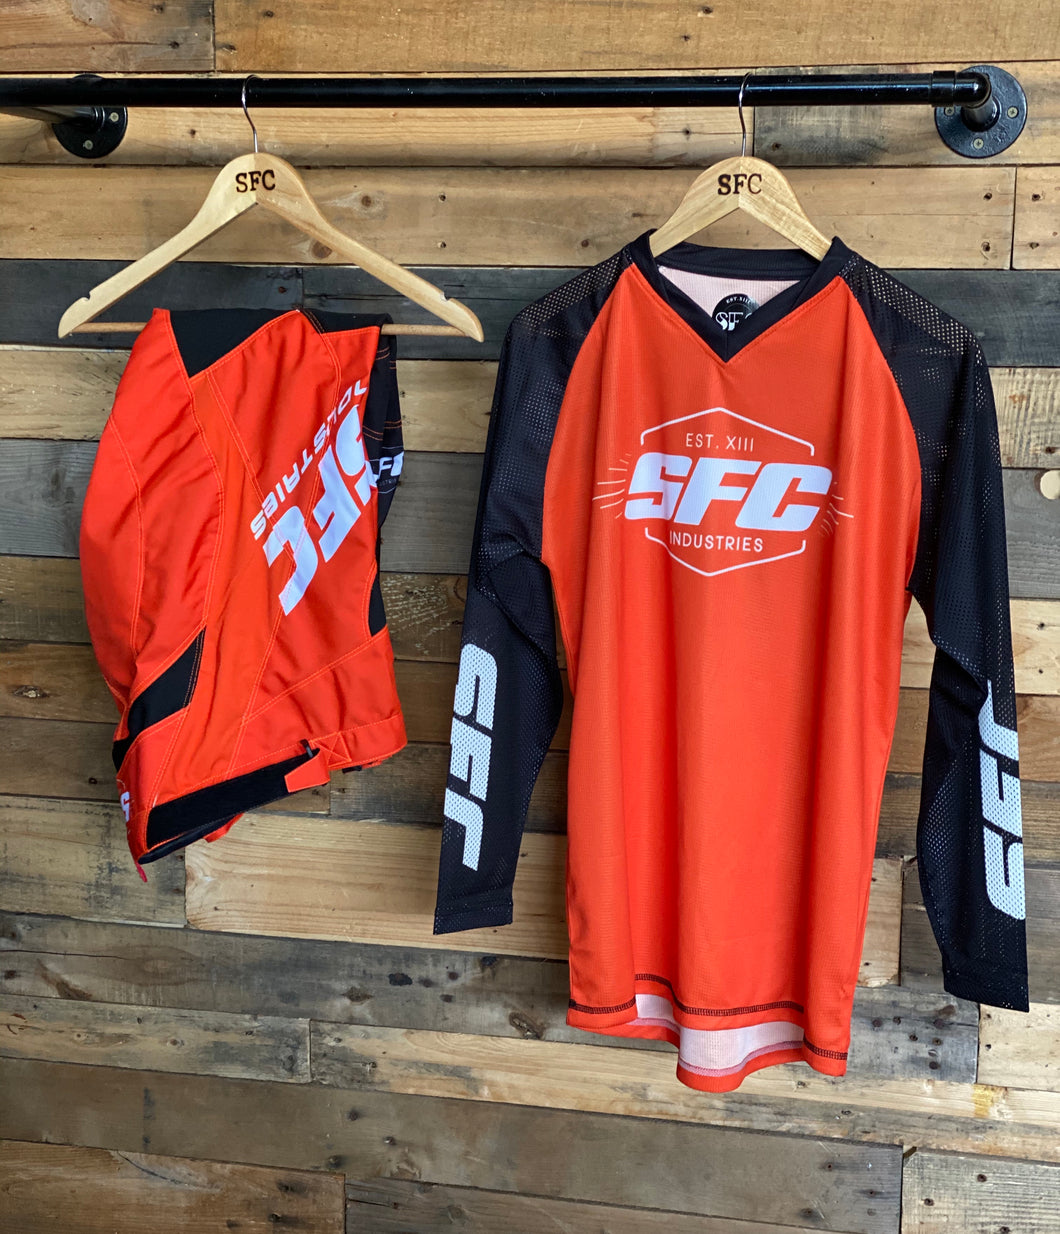 SFC INDUSTRIES 2020 COLLECTION KTM ORANGE MX JERSEY